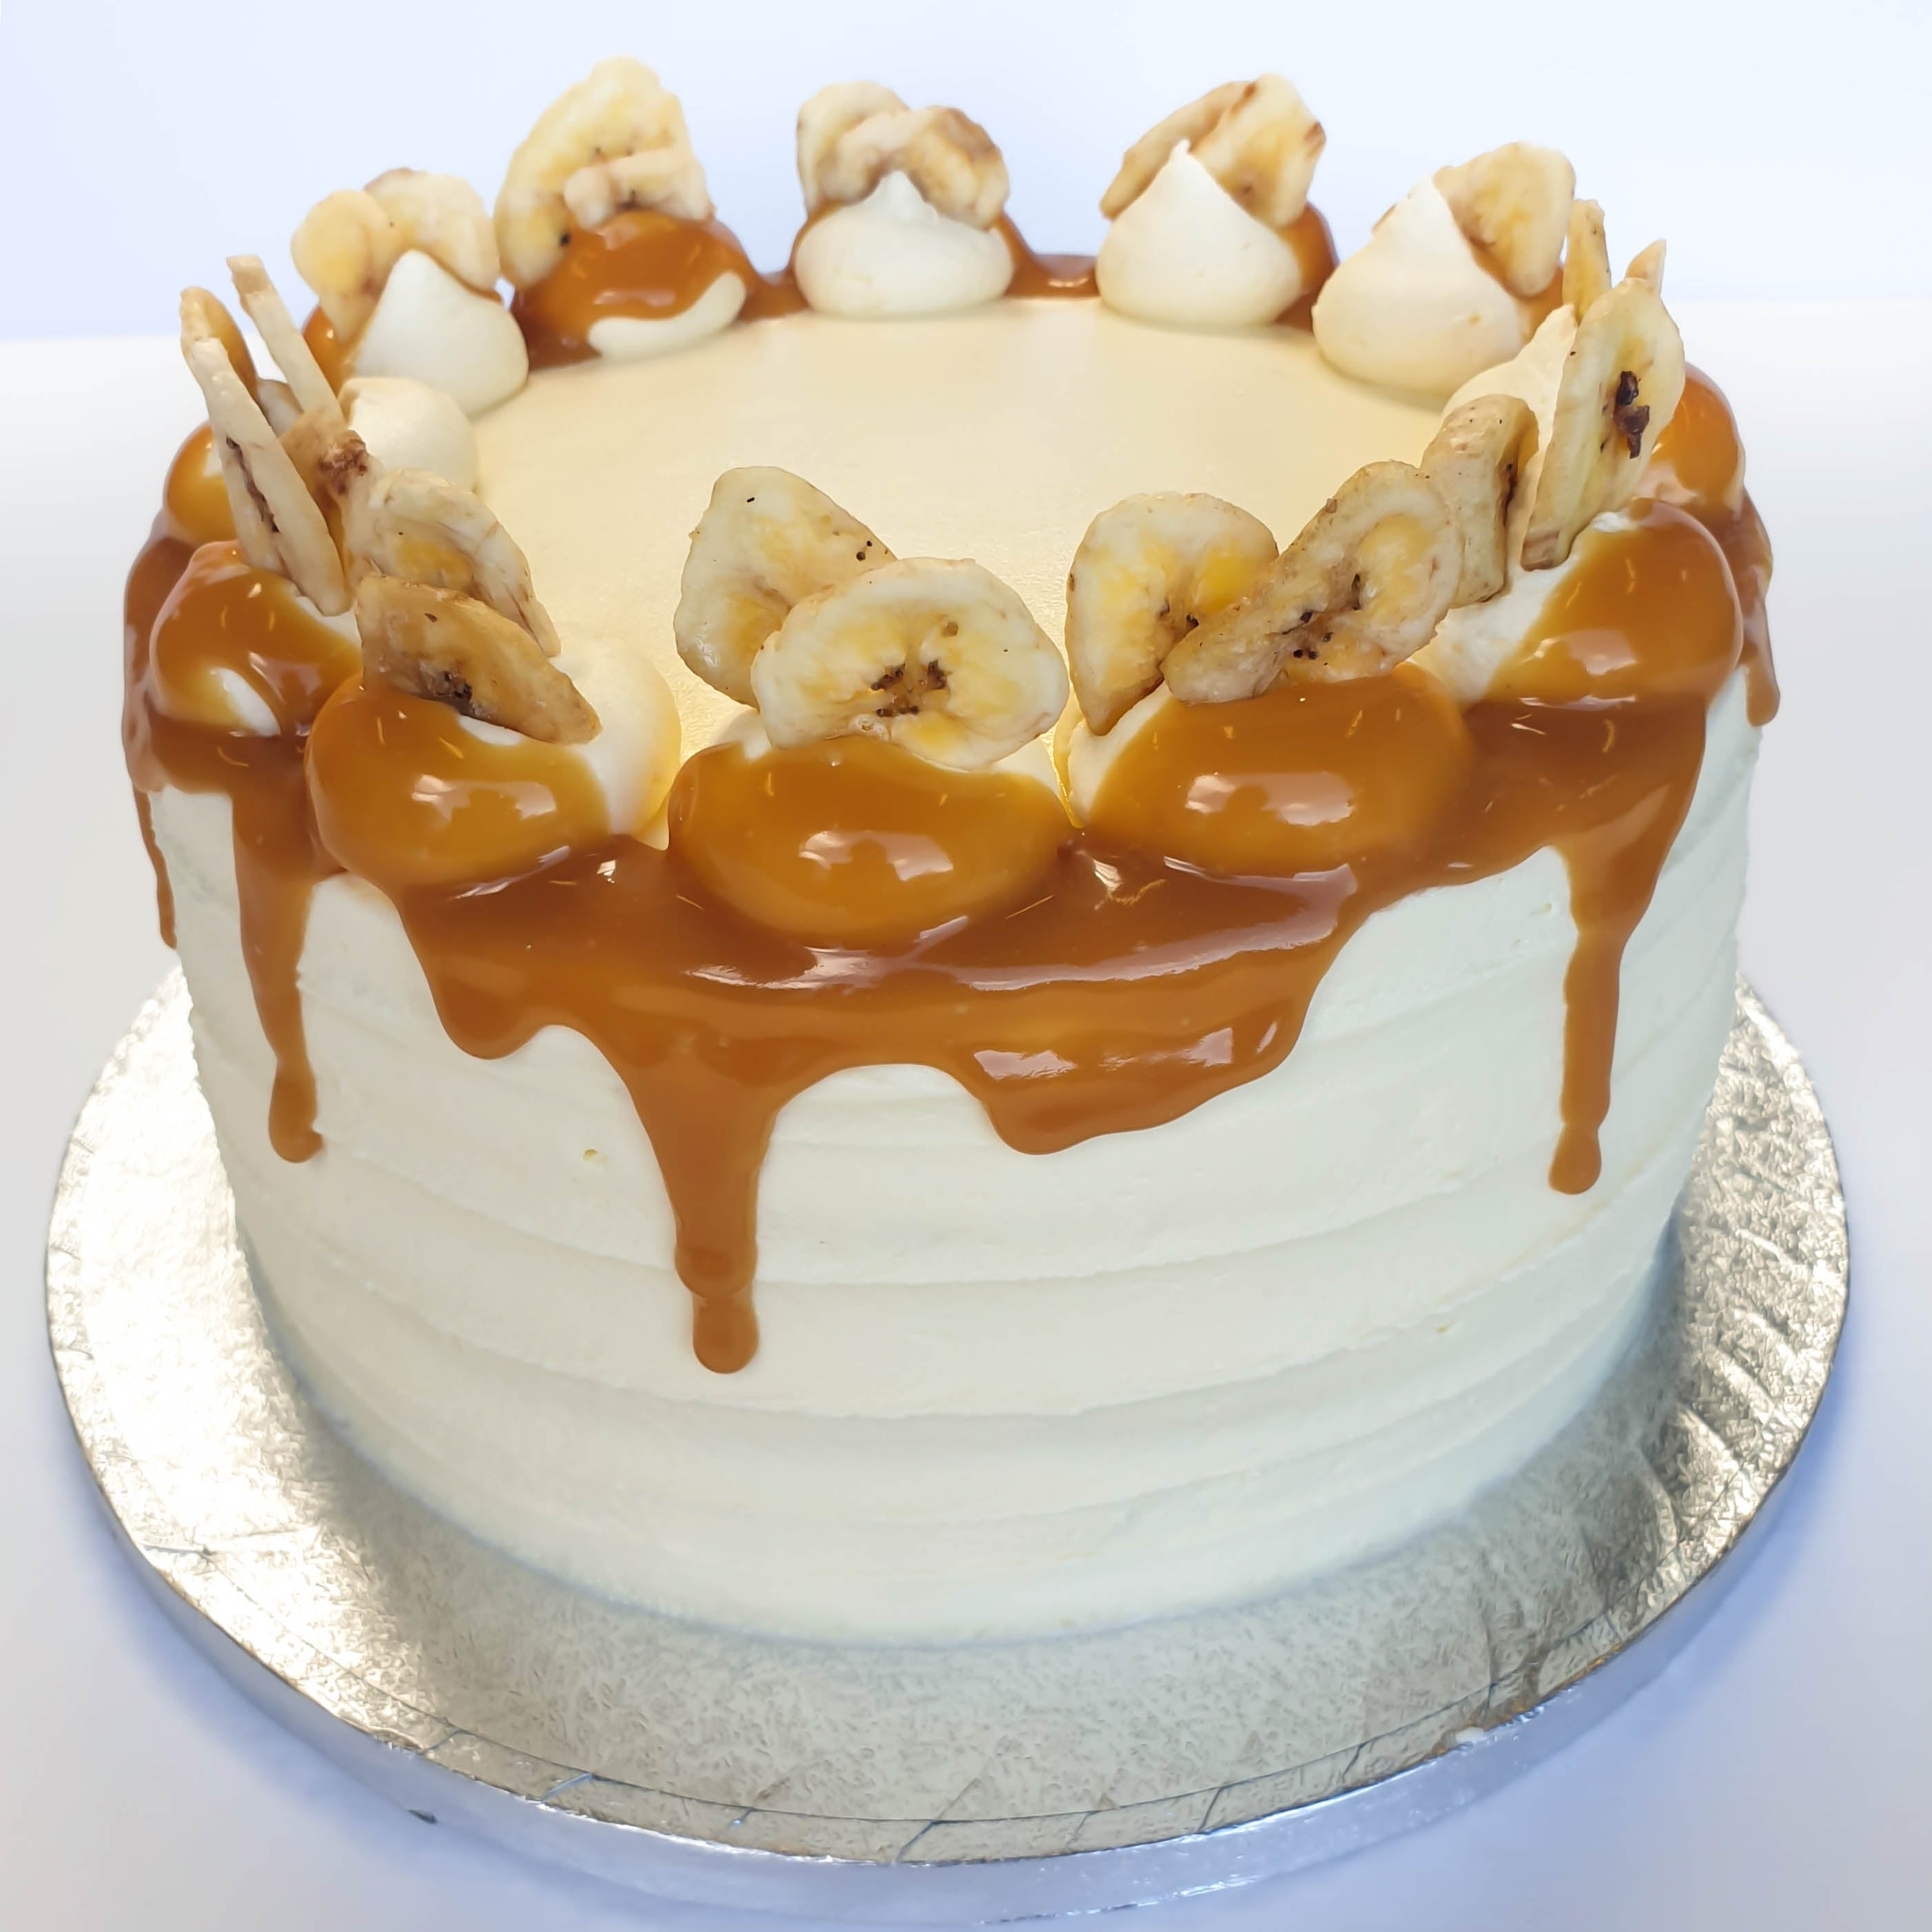 Banana & Caramel Celebration Cake